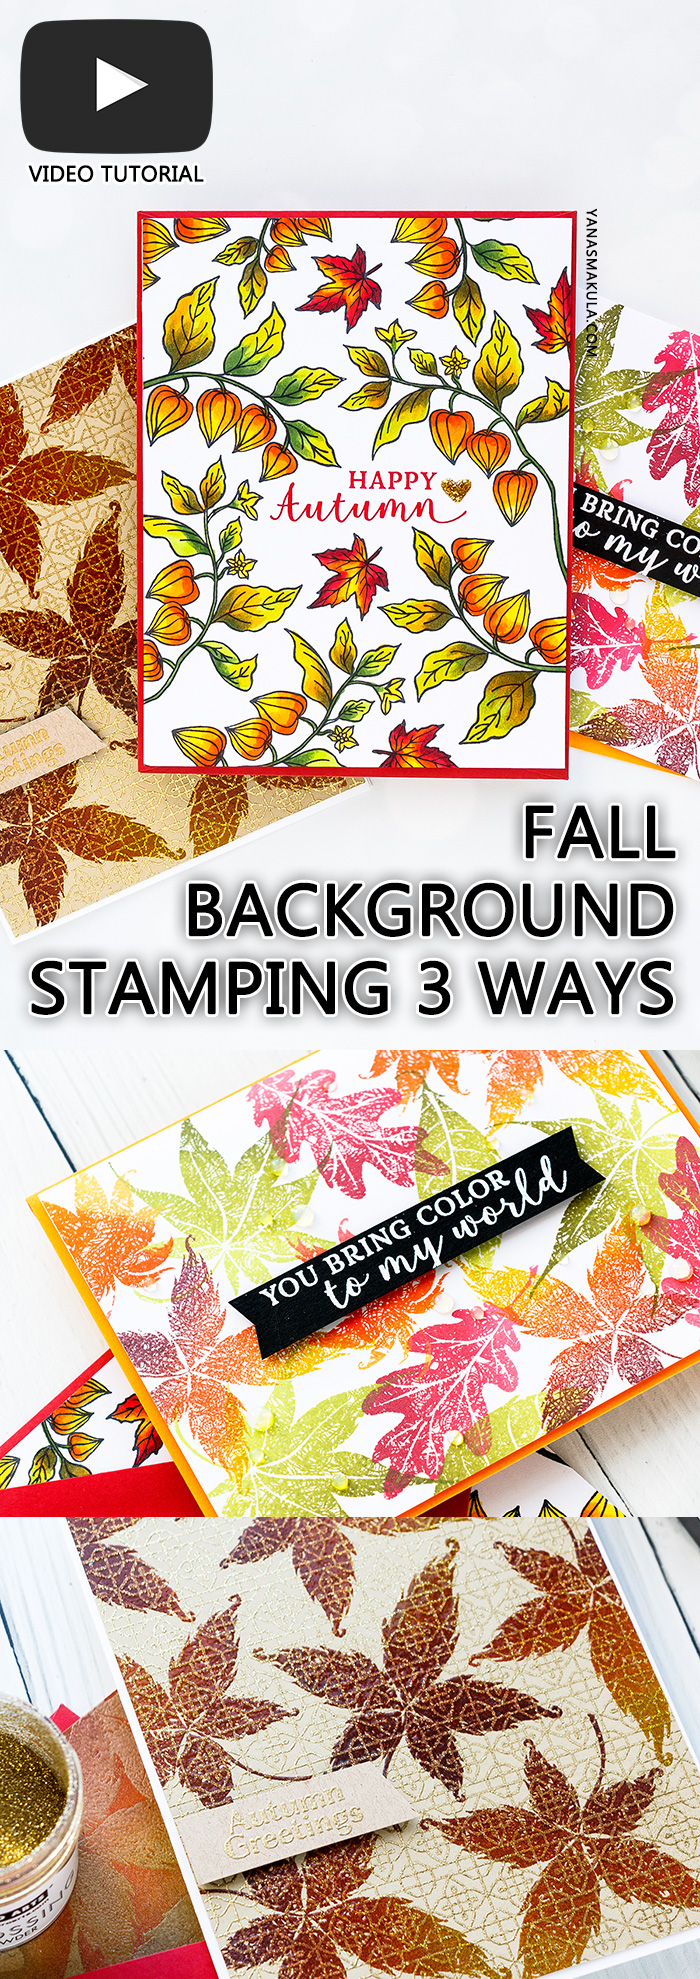 Autumn & Fall Background Stamping Ideas & Techniques with Yana Smakula. Hero Arts | Fall Foliage Cards. September 2018 My Monthly Hero Kit. Video tutorial. #yscardmaking #heroarts #mymonthlyhero #cardmaking #fallcard #fallcardmaking #autumncard #heroartskit #cardkit #handmadecard